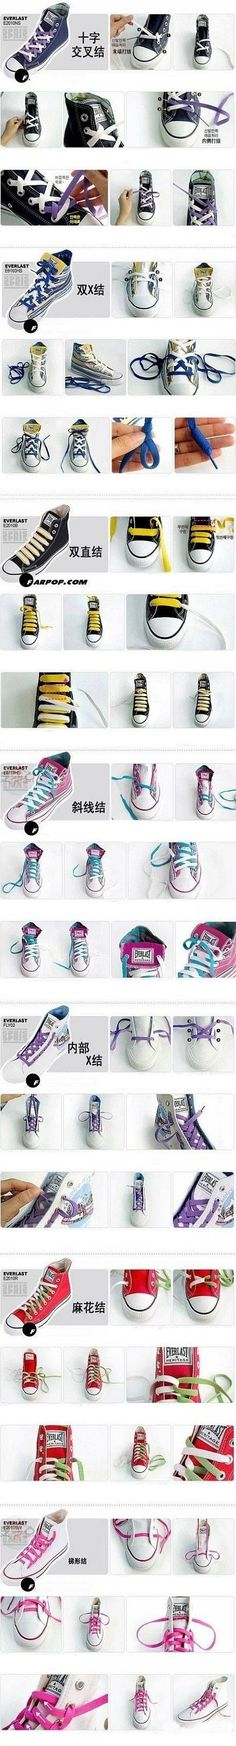 7 Cool Ways To Tie Your Shoe Laces